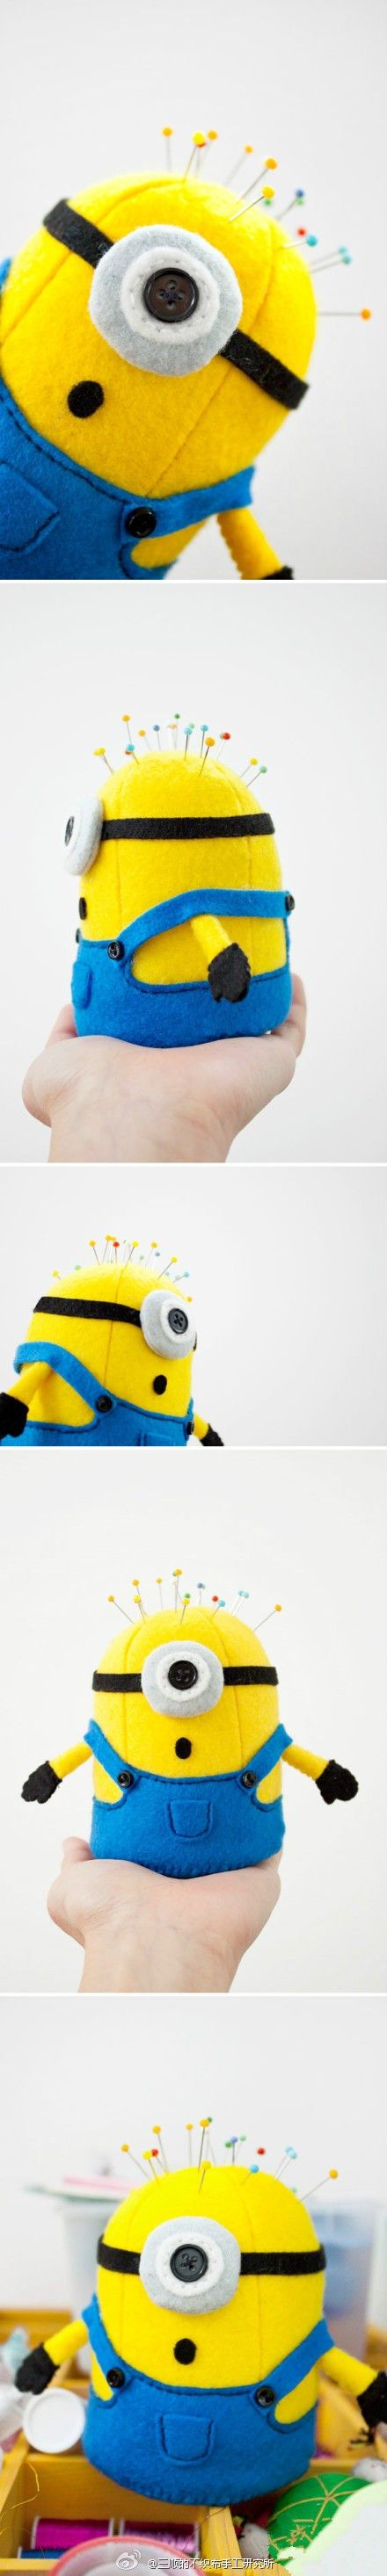 DIY Despicable Me Minion Phone Cozy I could use this same idea to ...